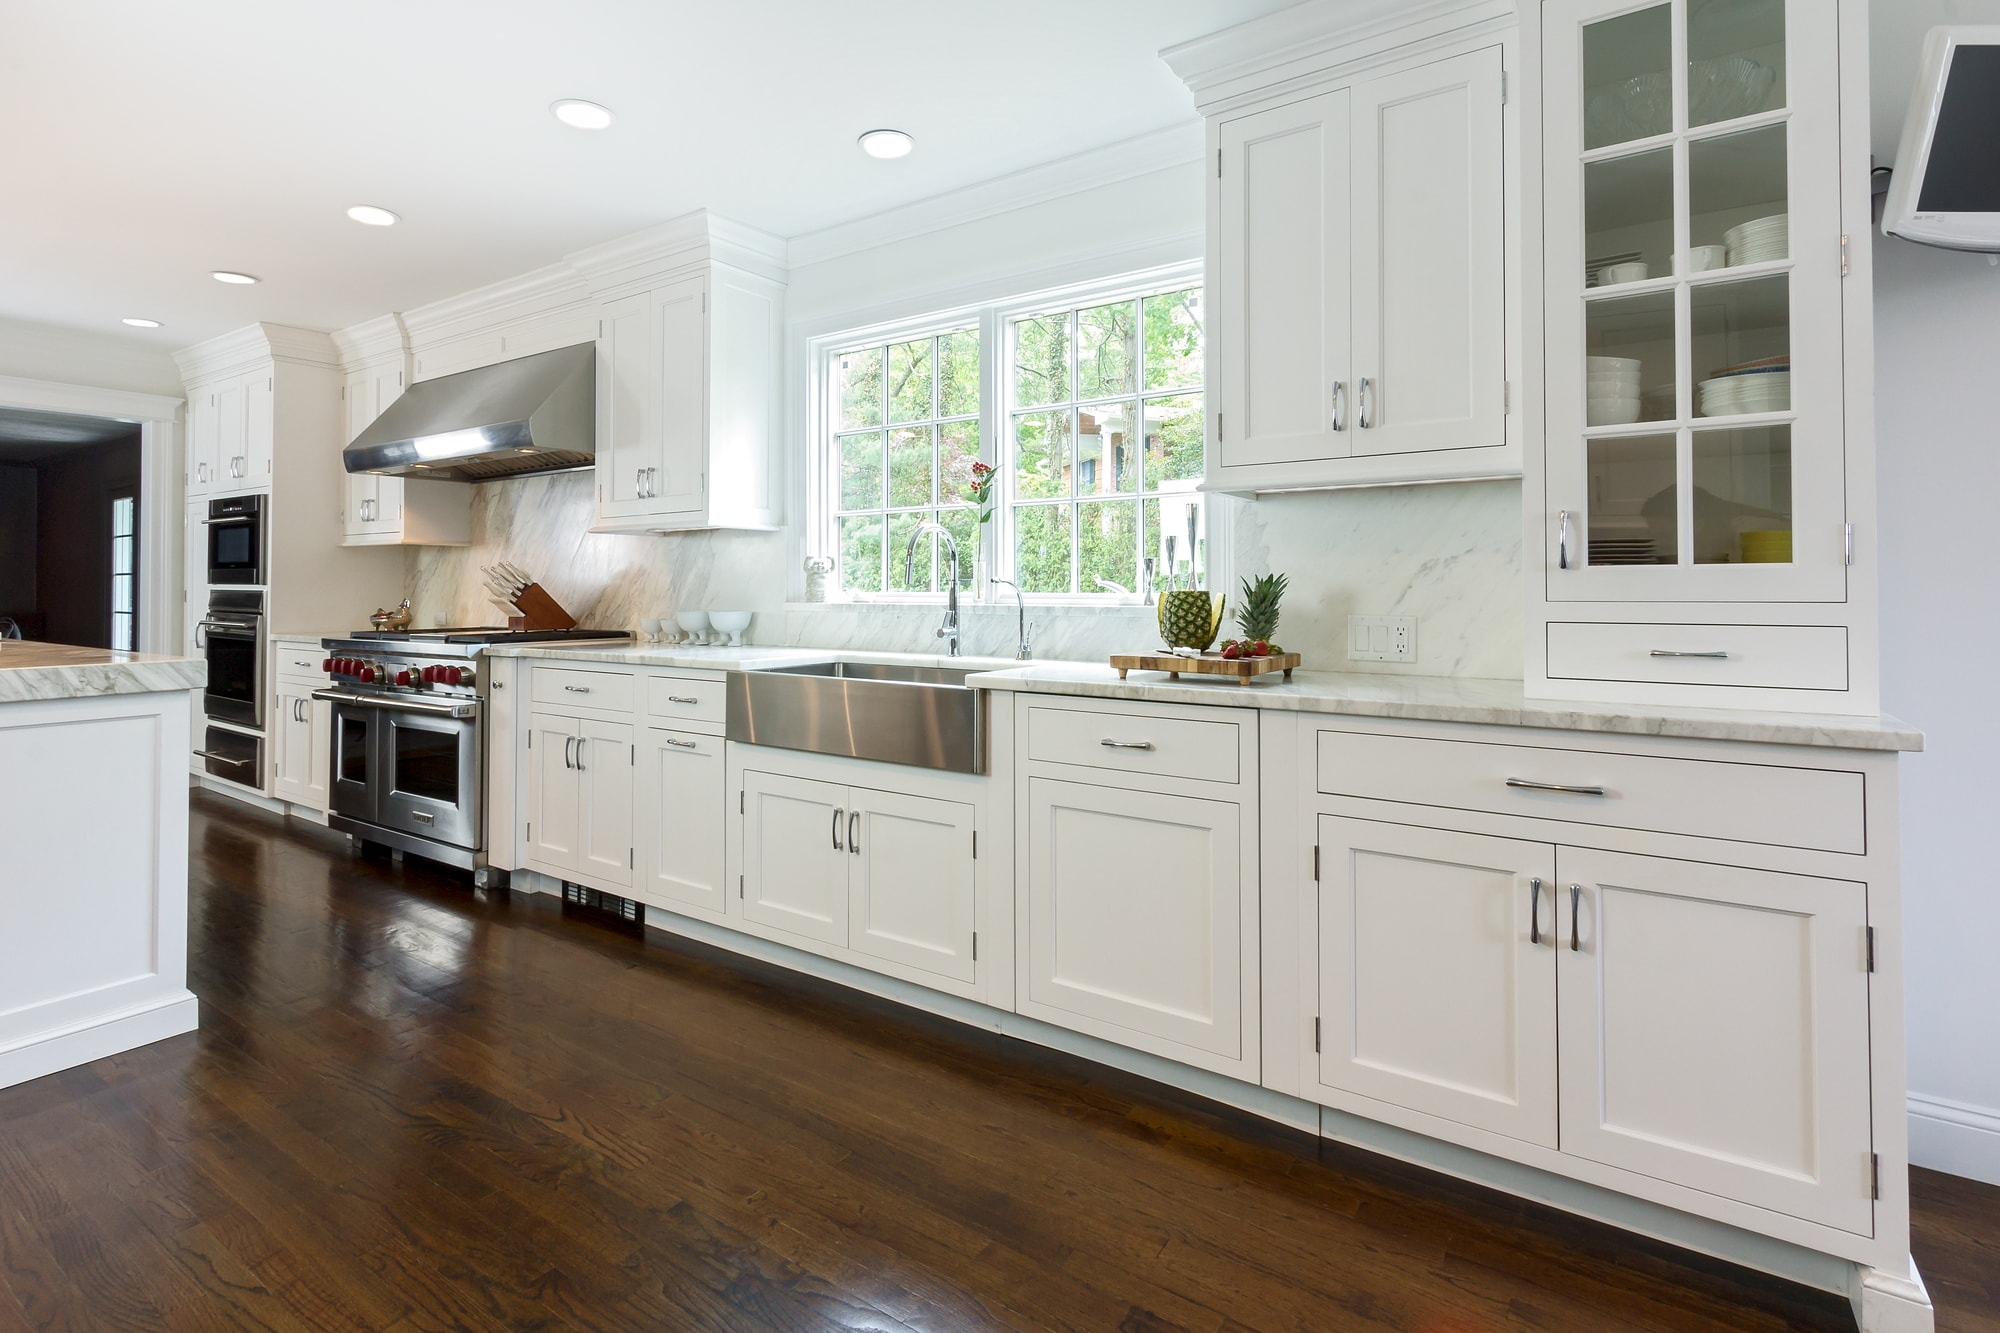 Transitional style kitchen with plenty of pull out drawers and cabinets